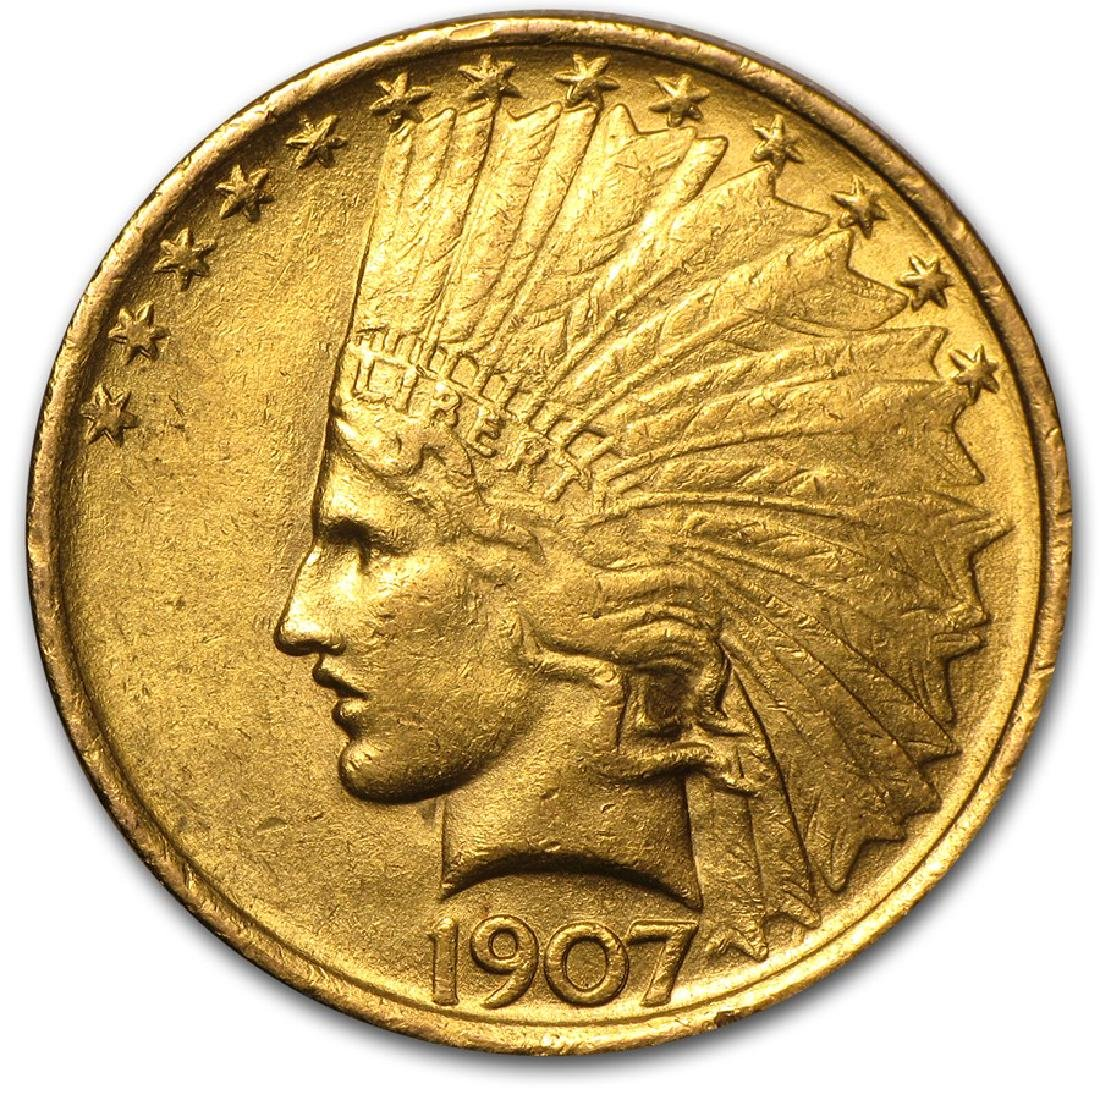 1907 $10 Indian Head Gold Coin